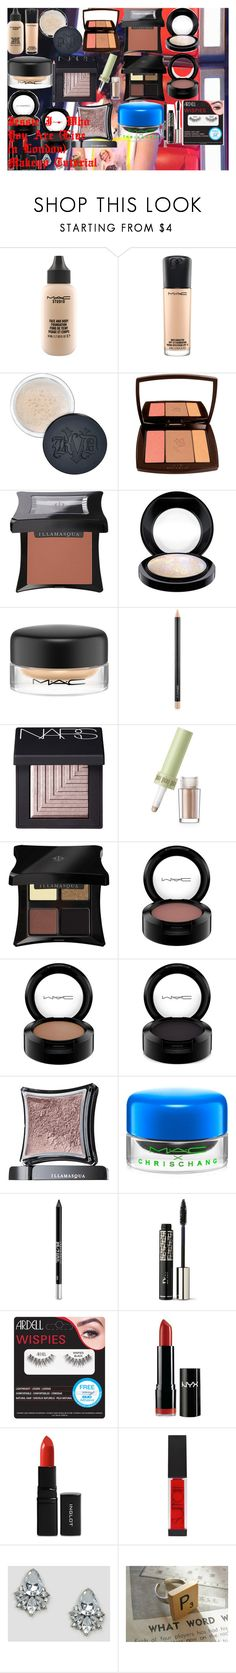 Jessie J - Who You Are (Live in London) Makeup Tutorial by oroartye-1 on Polyvore featuring beauty, Lancôme, MAC Cosmetics, Illamasqua, Christian Dior, Surratt, NARS Cosmetics, Kat Von D, Urban Decay and Inglot